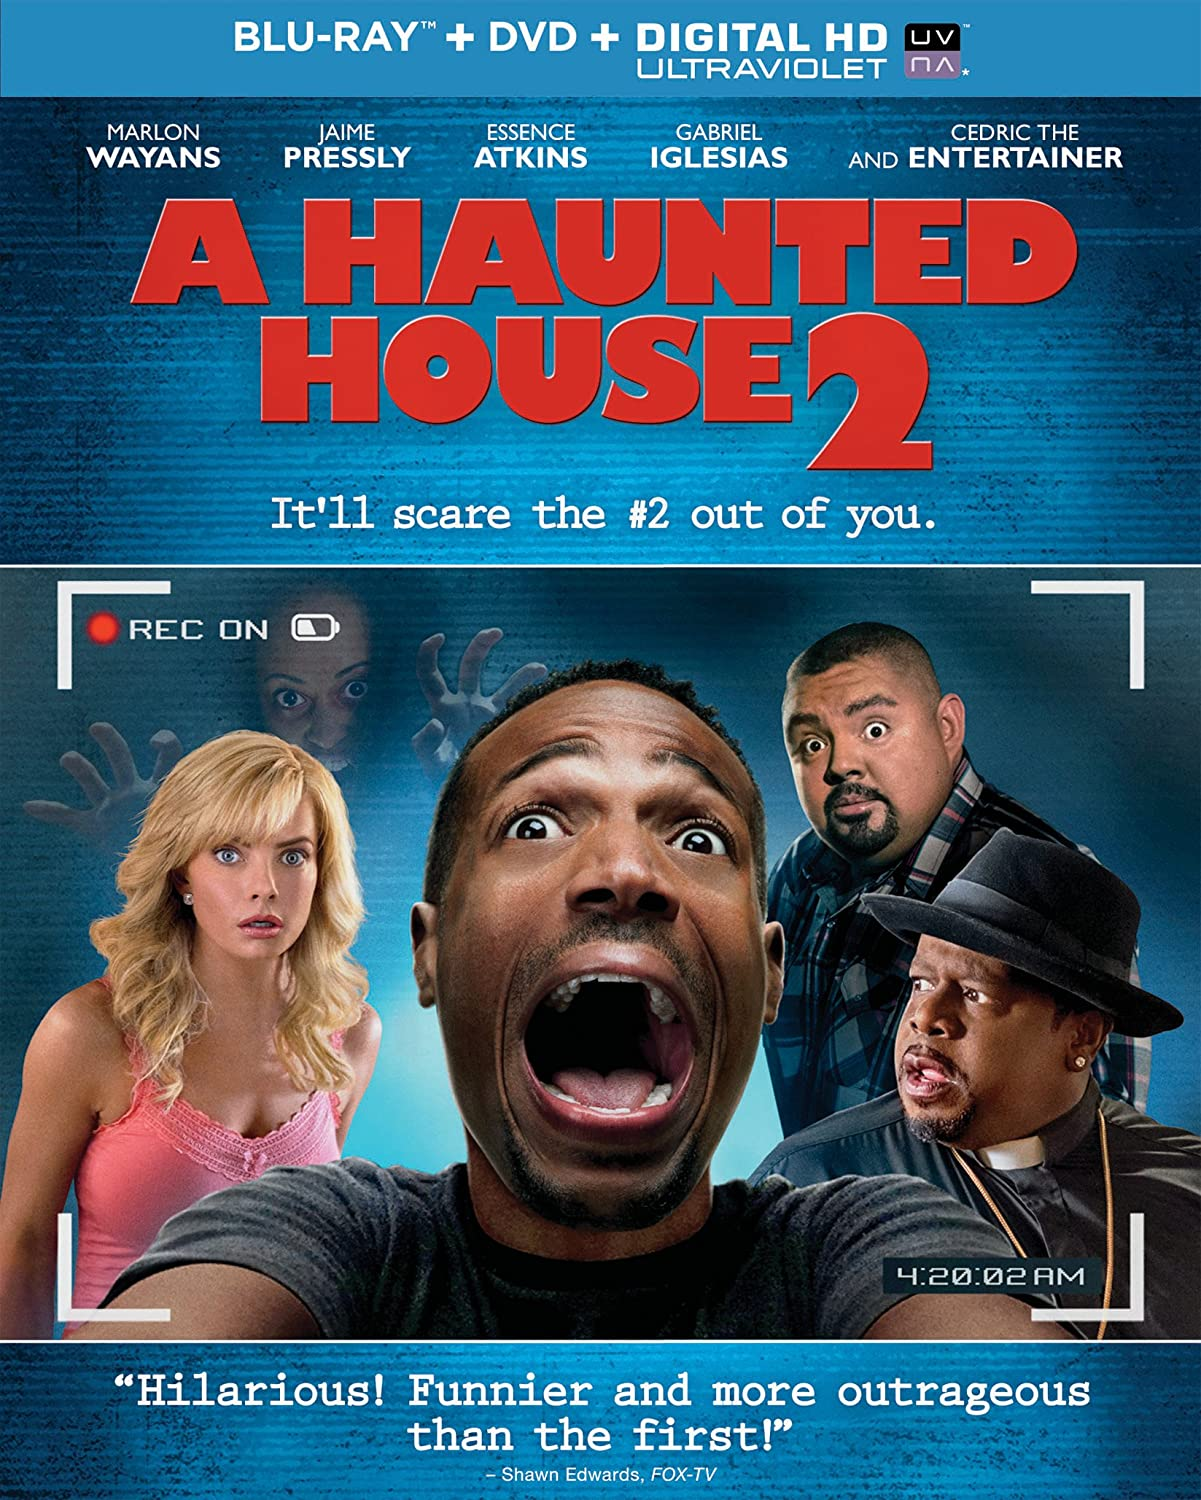 Superb Amazon.com: A Haunted House 2 [Blu Ray]: Marlon Wayans, Jaime Pressly,  Essence Atkins, Gabriel Iglesias, Cedric The Entertainer, Missi Pyle,  Ashley Rickards ...